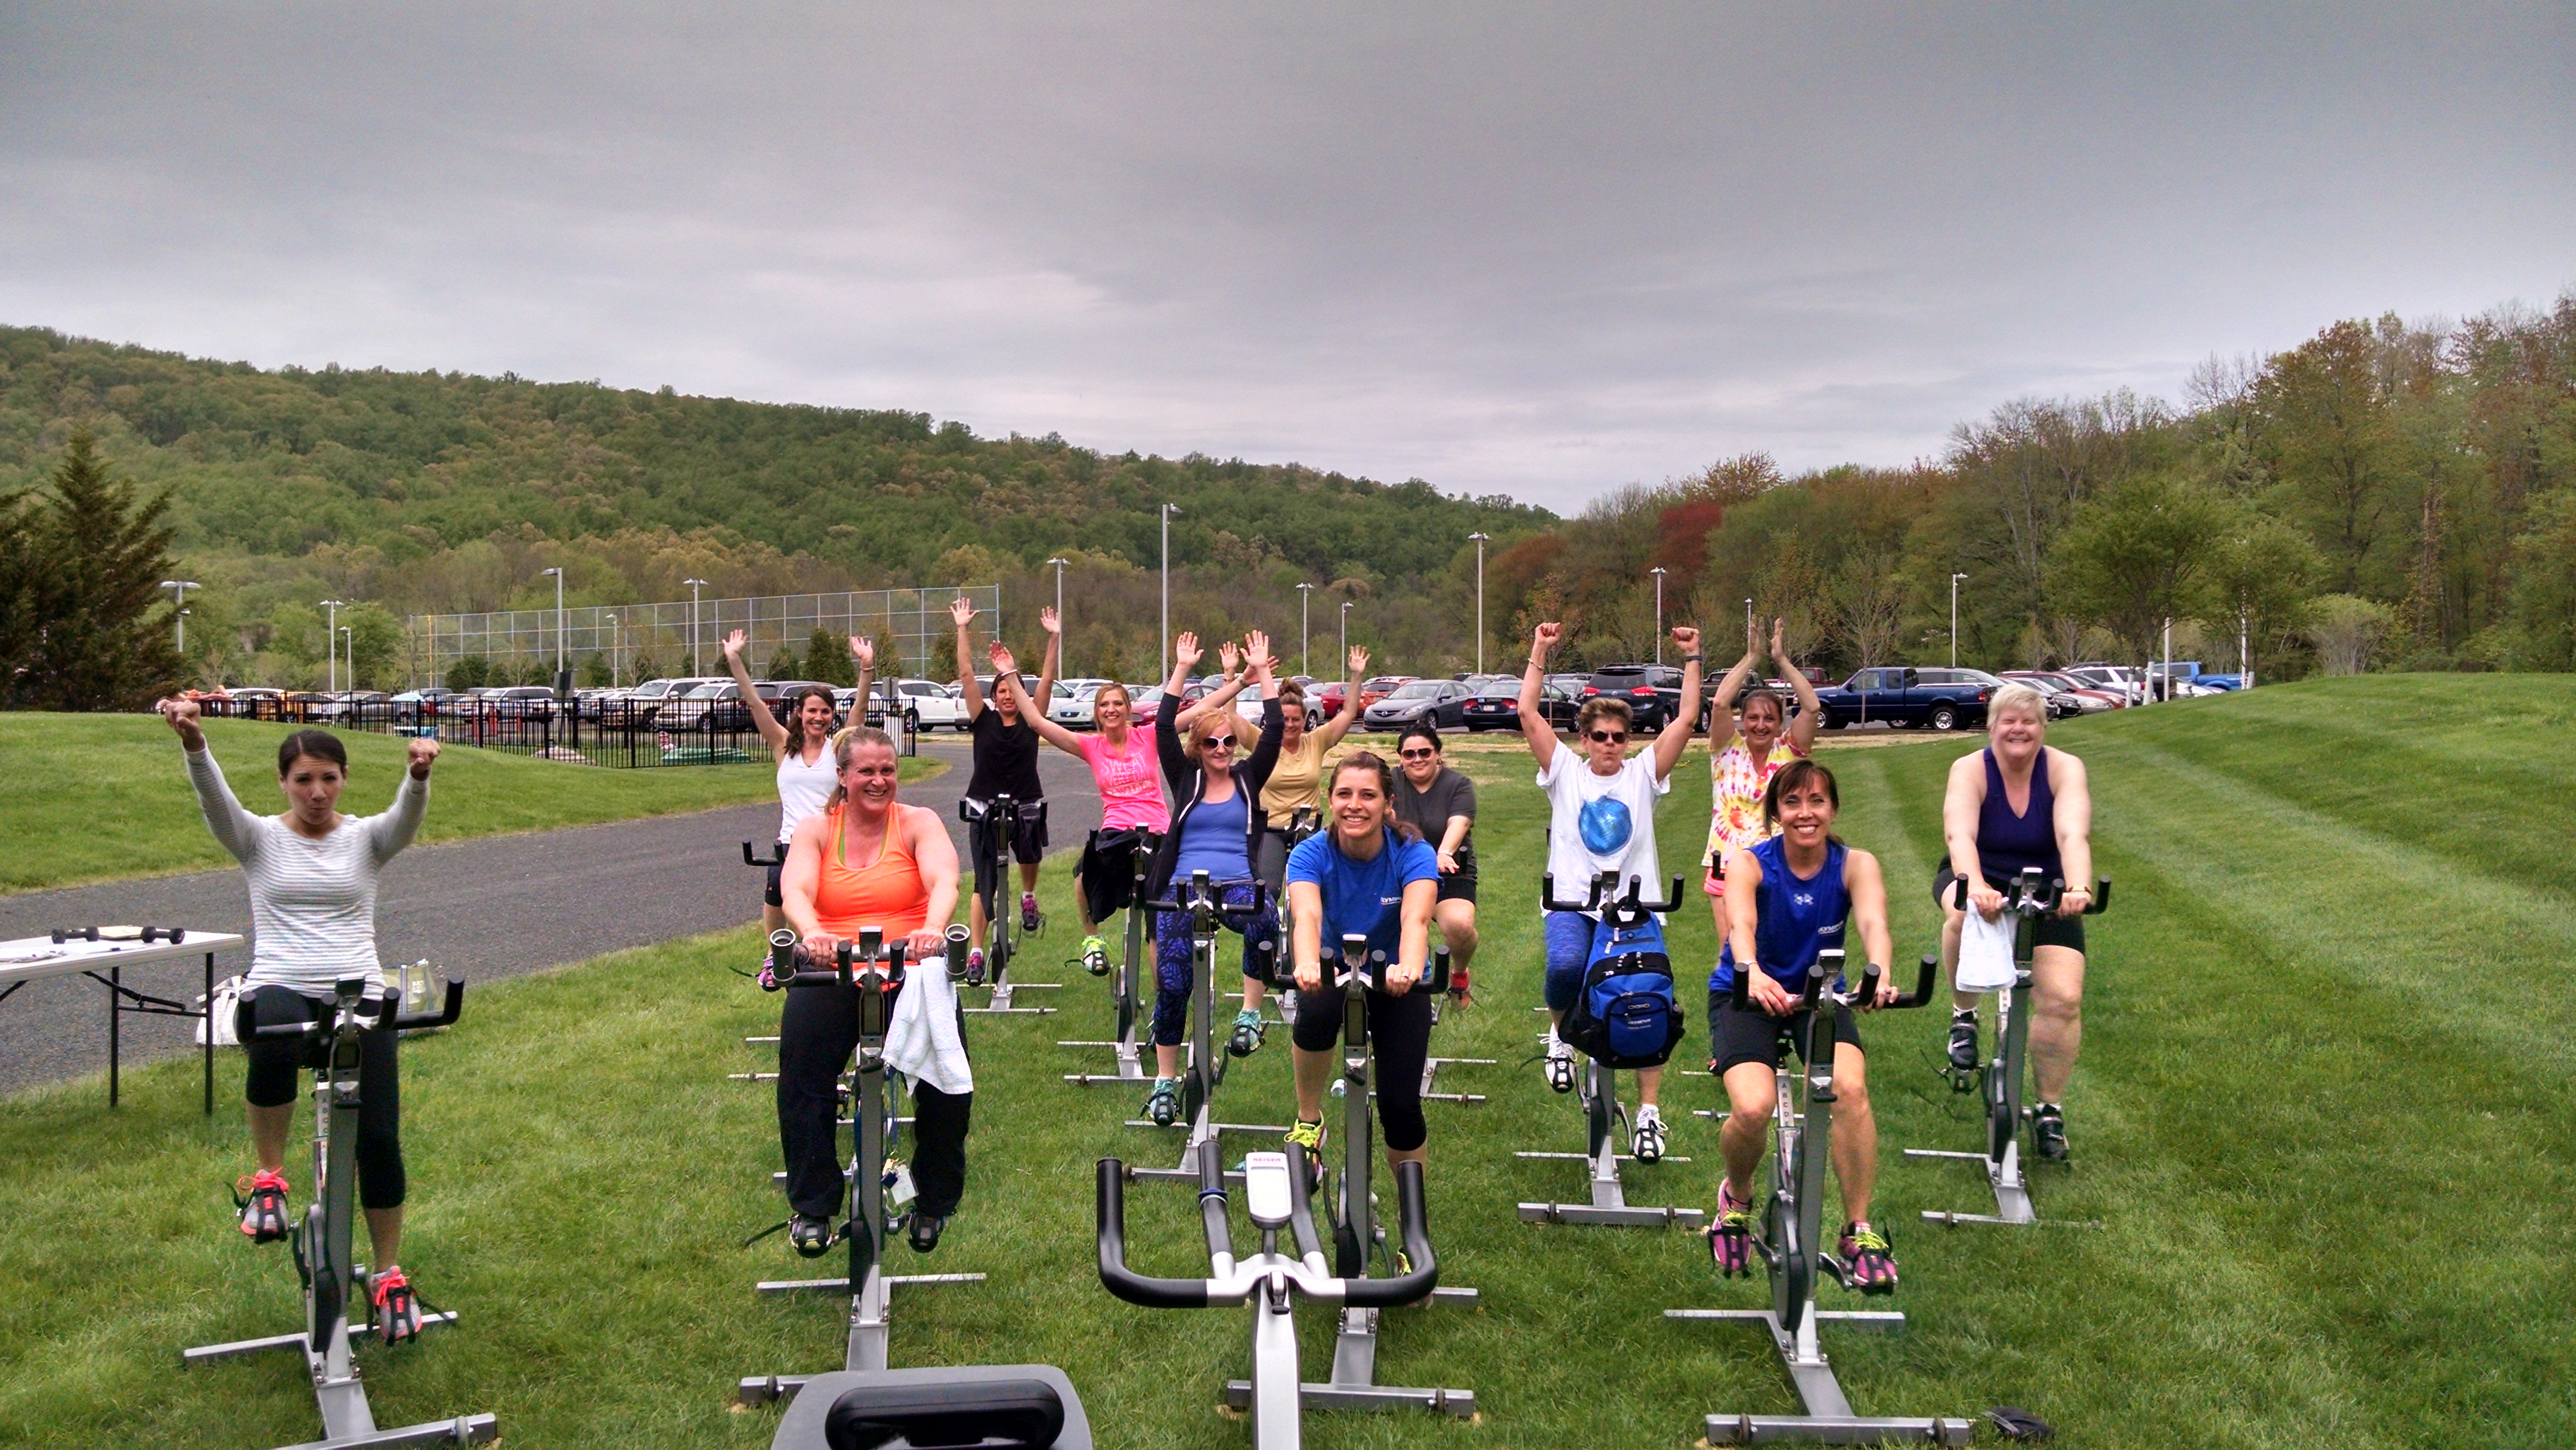 Olympus Rides to Fundraise